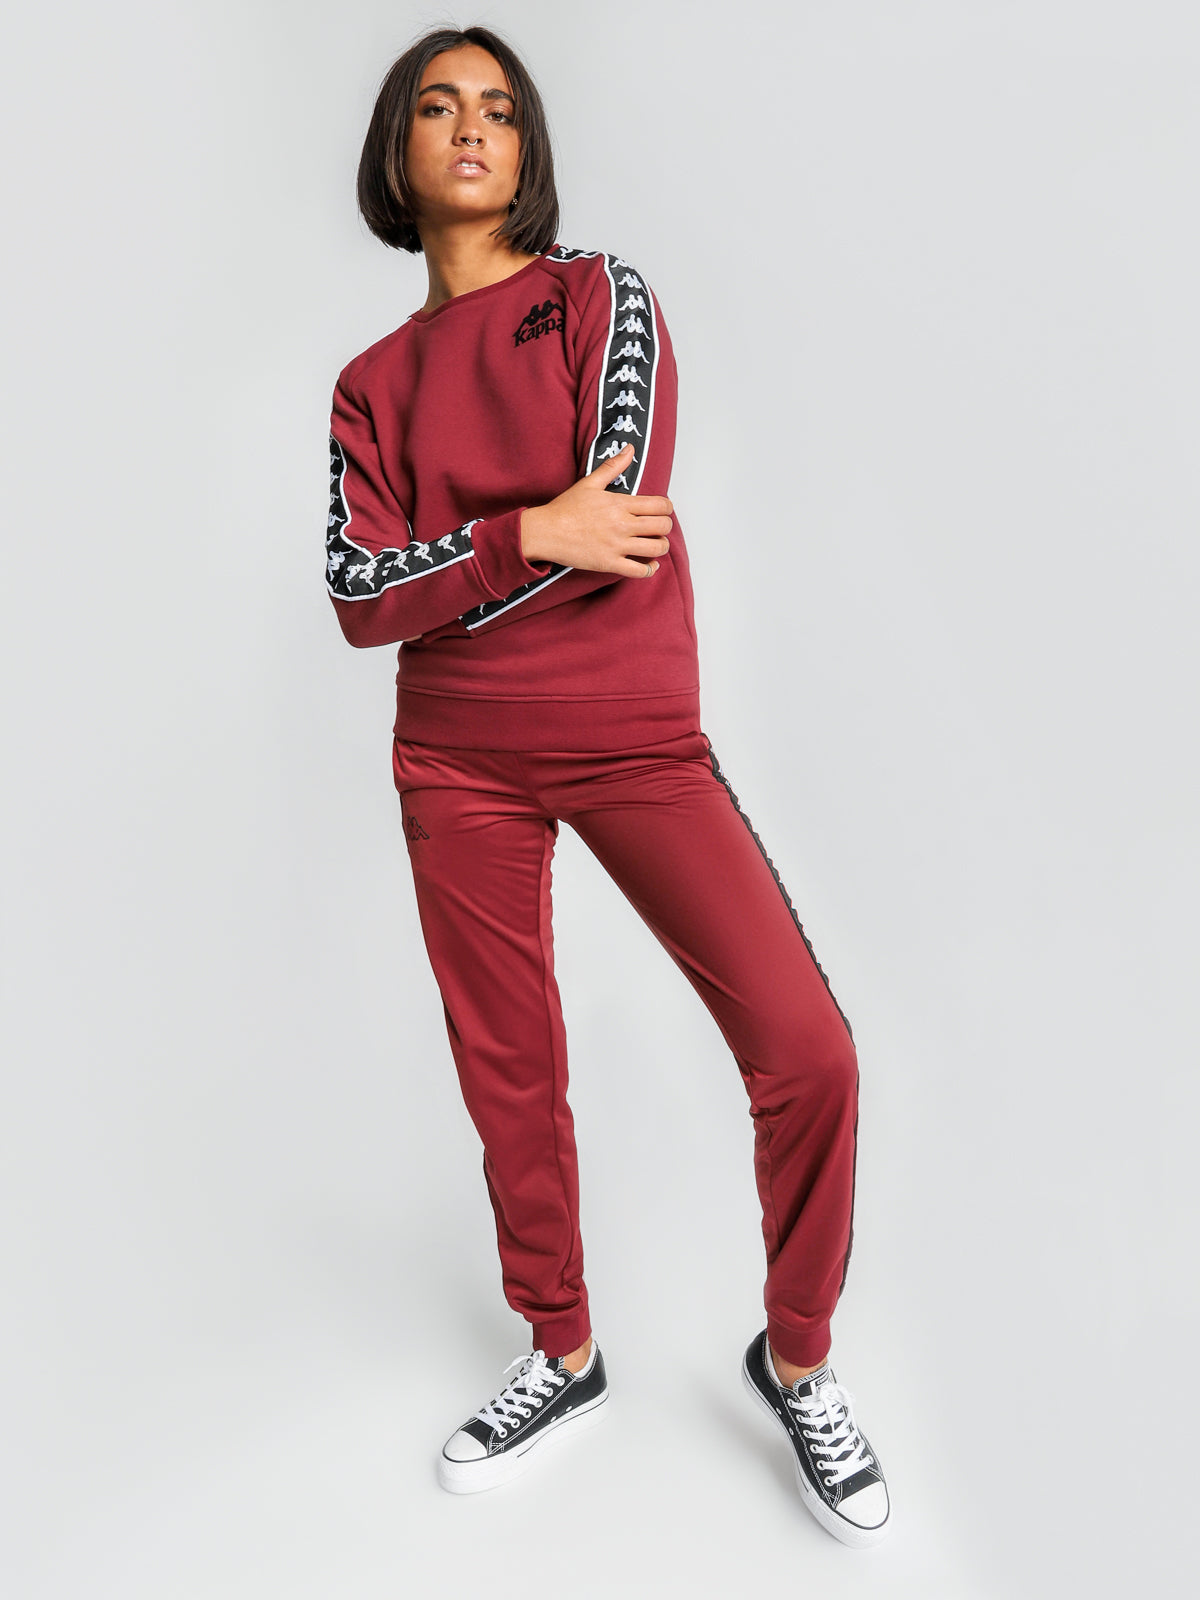 Authentic Hassan Jumper in Red Granat